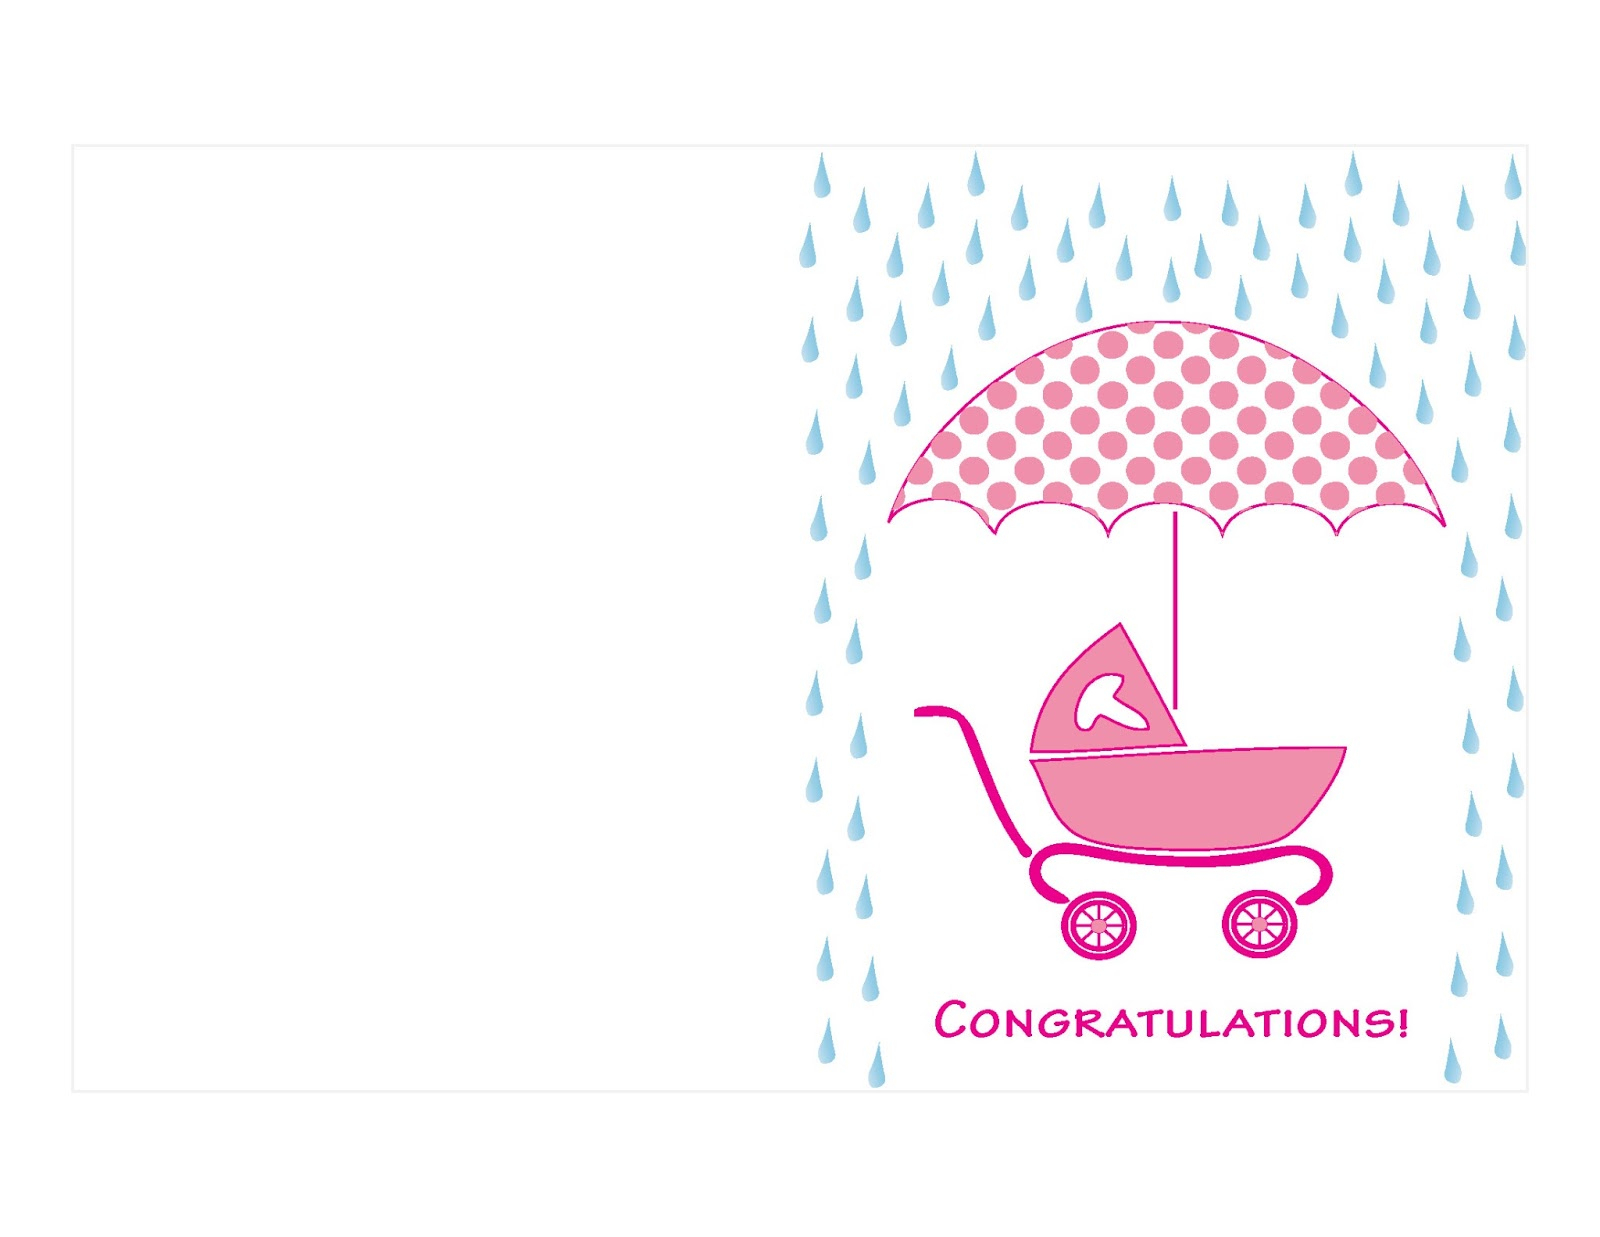 Photo : Free Printable Baby Shower Image - Free Printable Baby Boy Cards